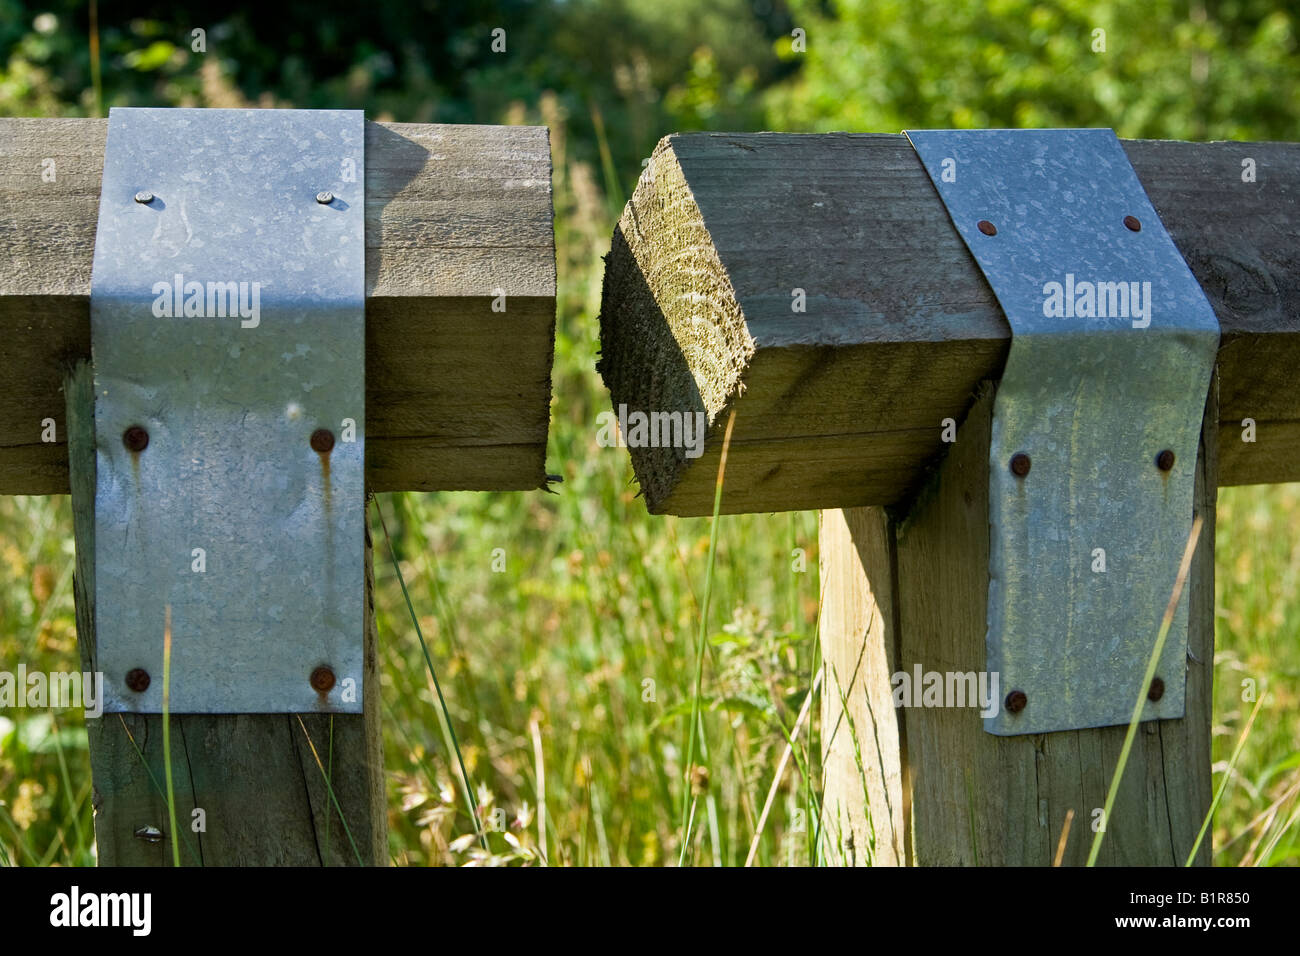 Metal Supports Stockfotos & Metal Supports Bilder - Alamy